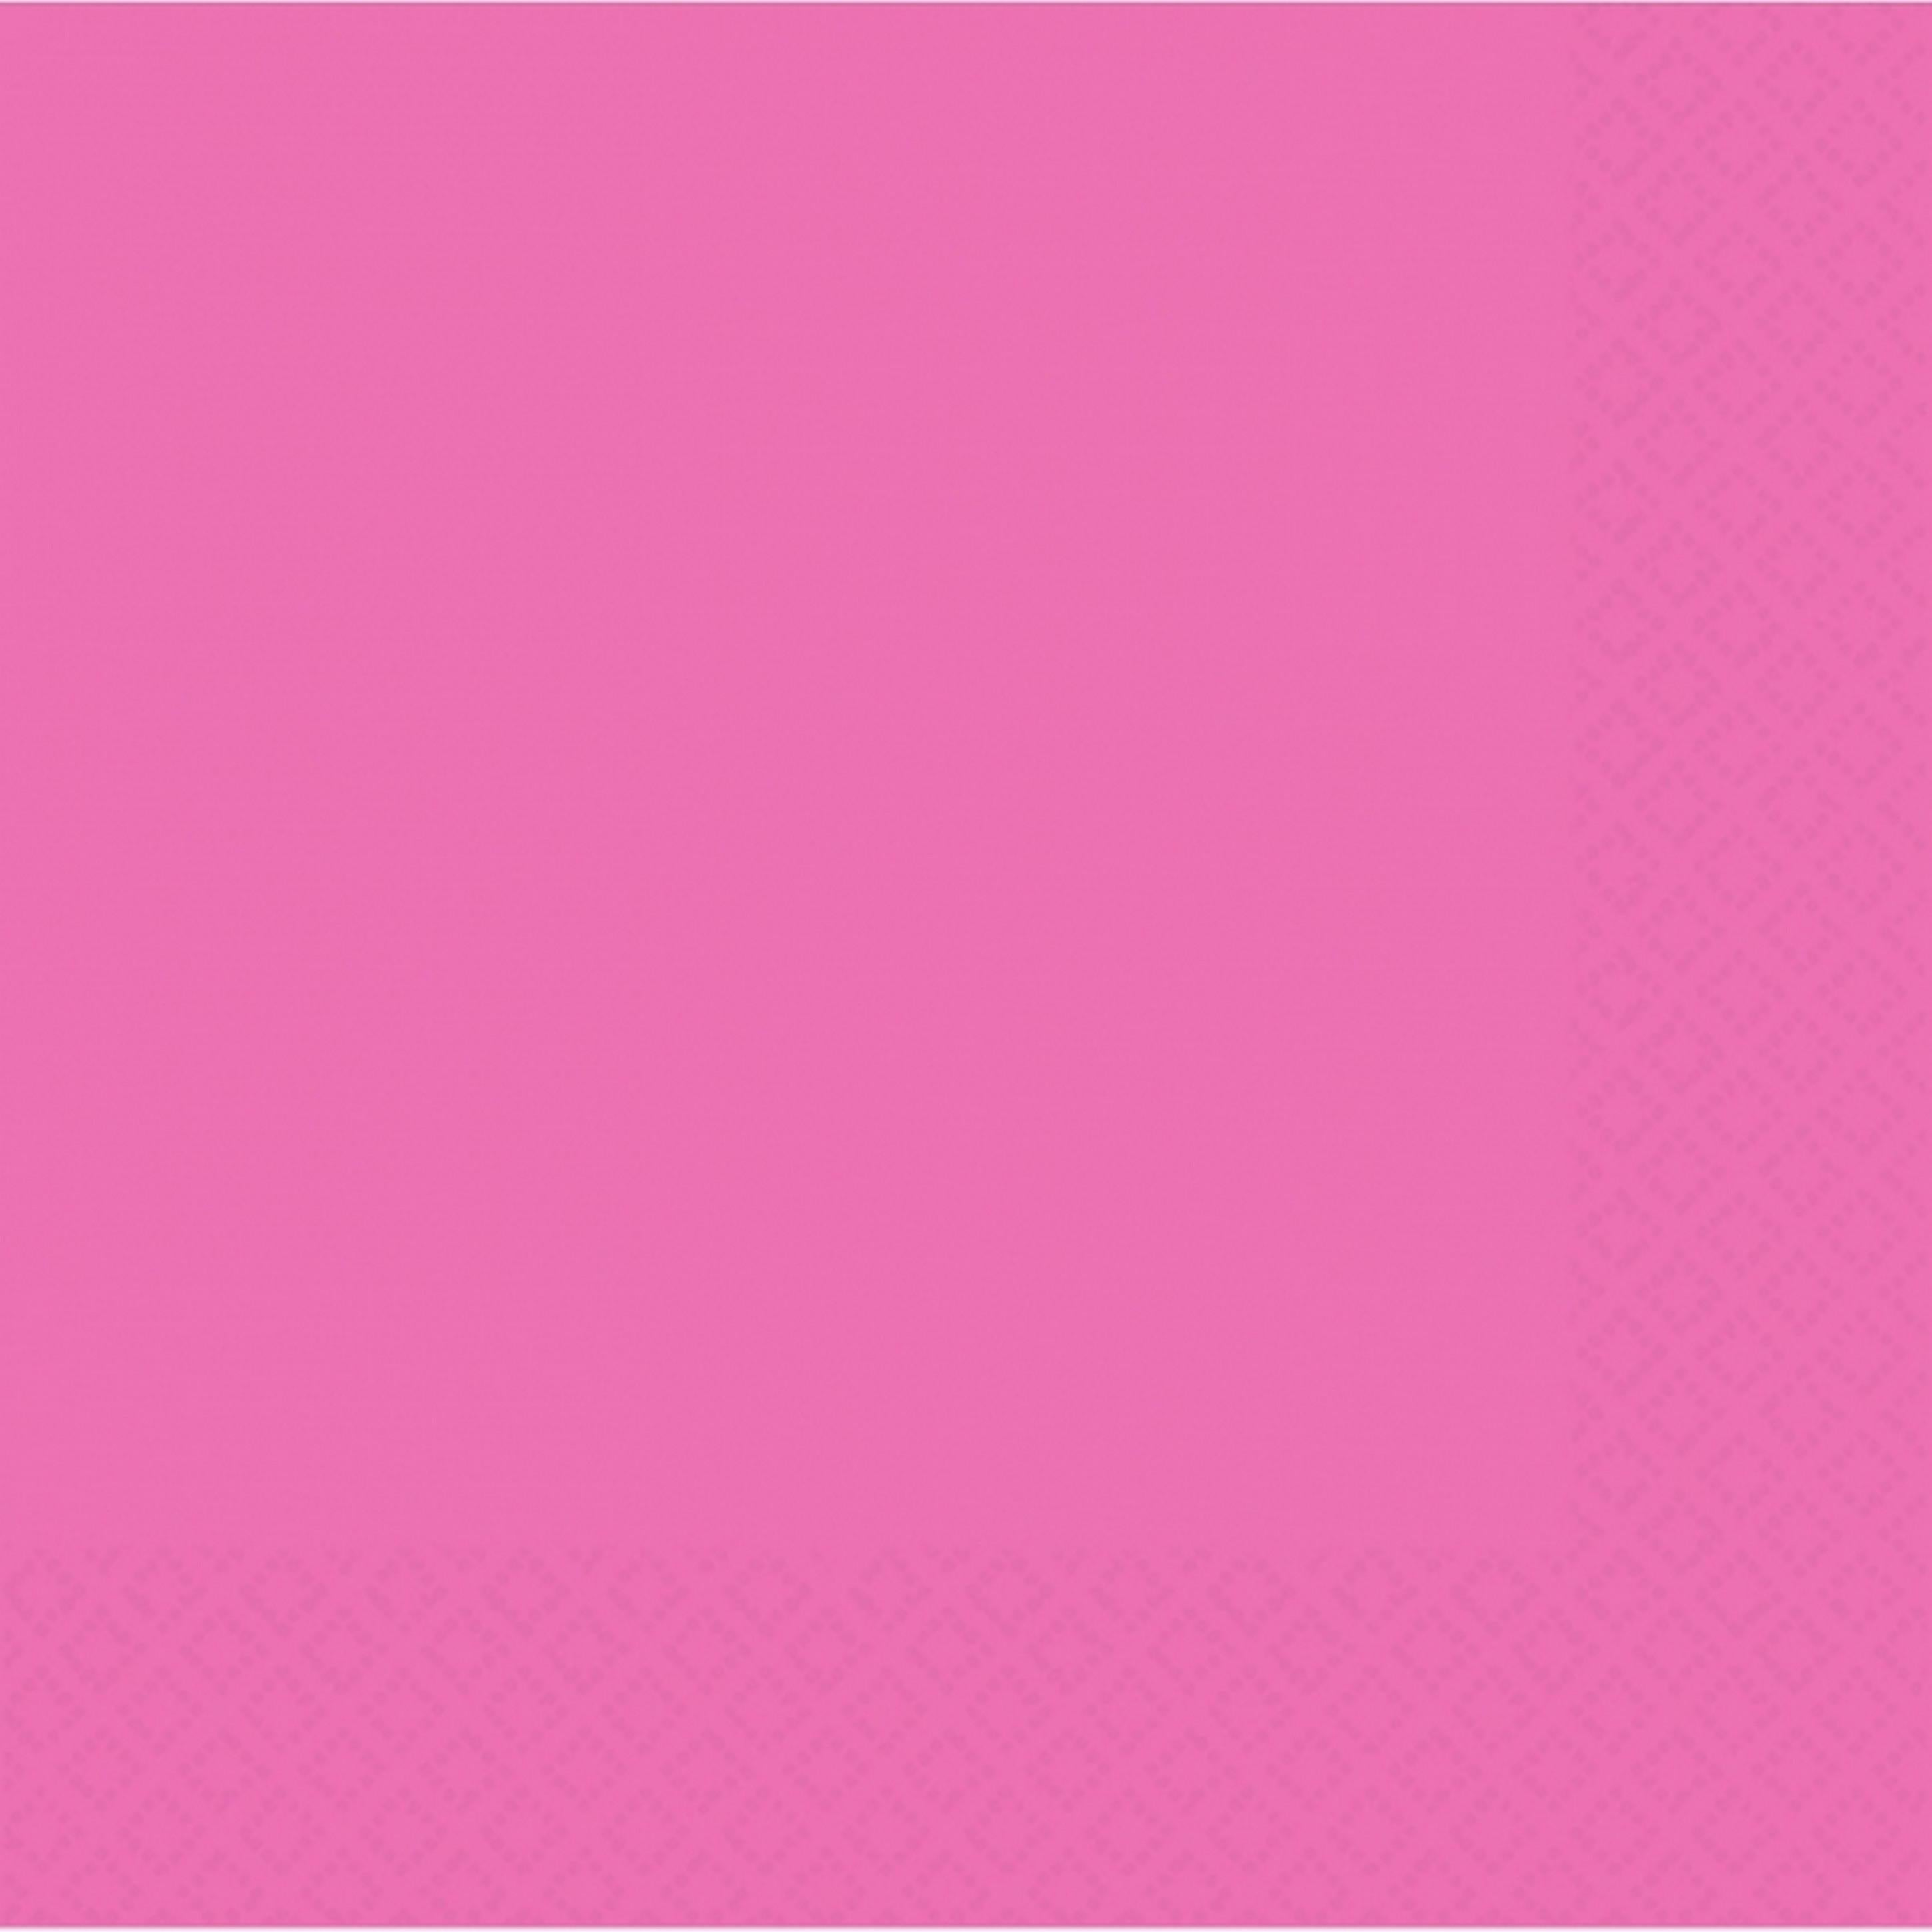 Amscan 2-Ply Bright Pink Luncheon Napkins 50 Ct Party Tableware